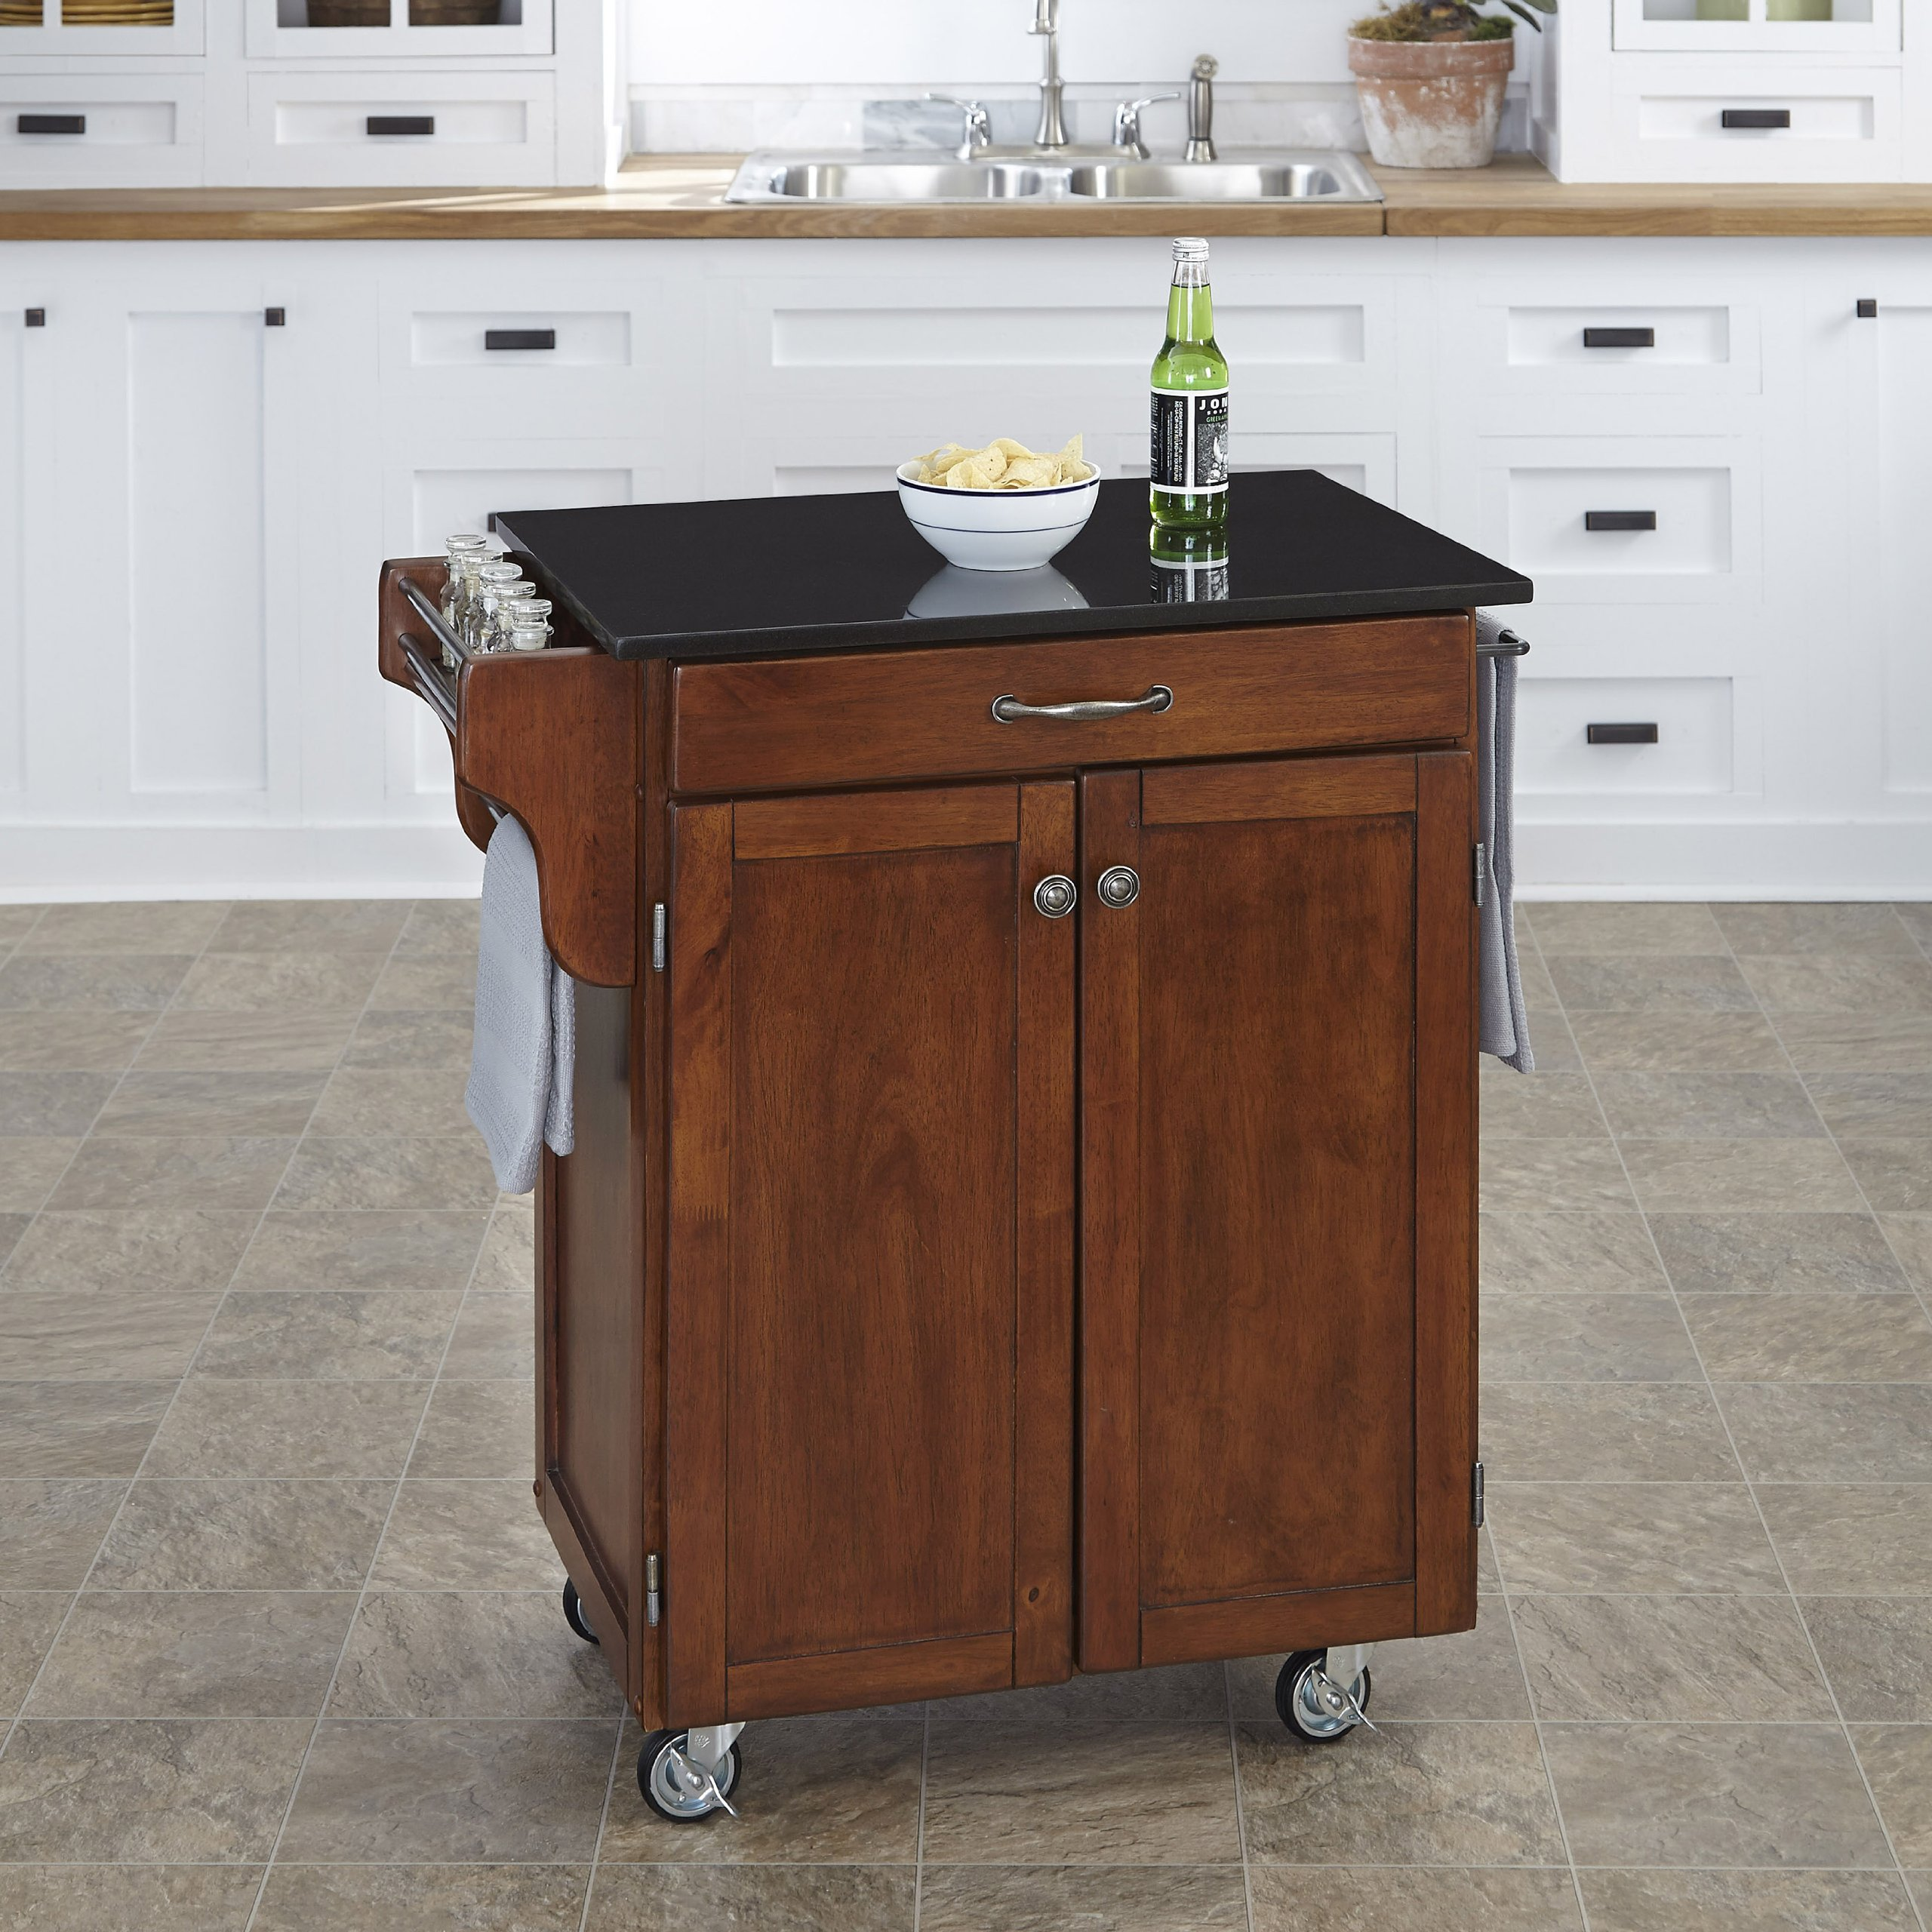 Home Styles 9001-0074 Create-a-Cart 9001 Series Cuisine Cart with Black Granite Top, Cherry, 32-1/2-Inch by Home Styles (Image #2)